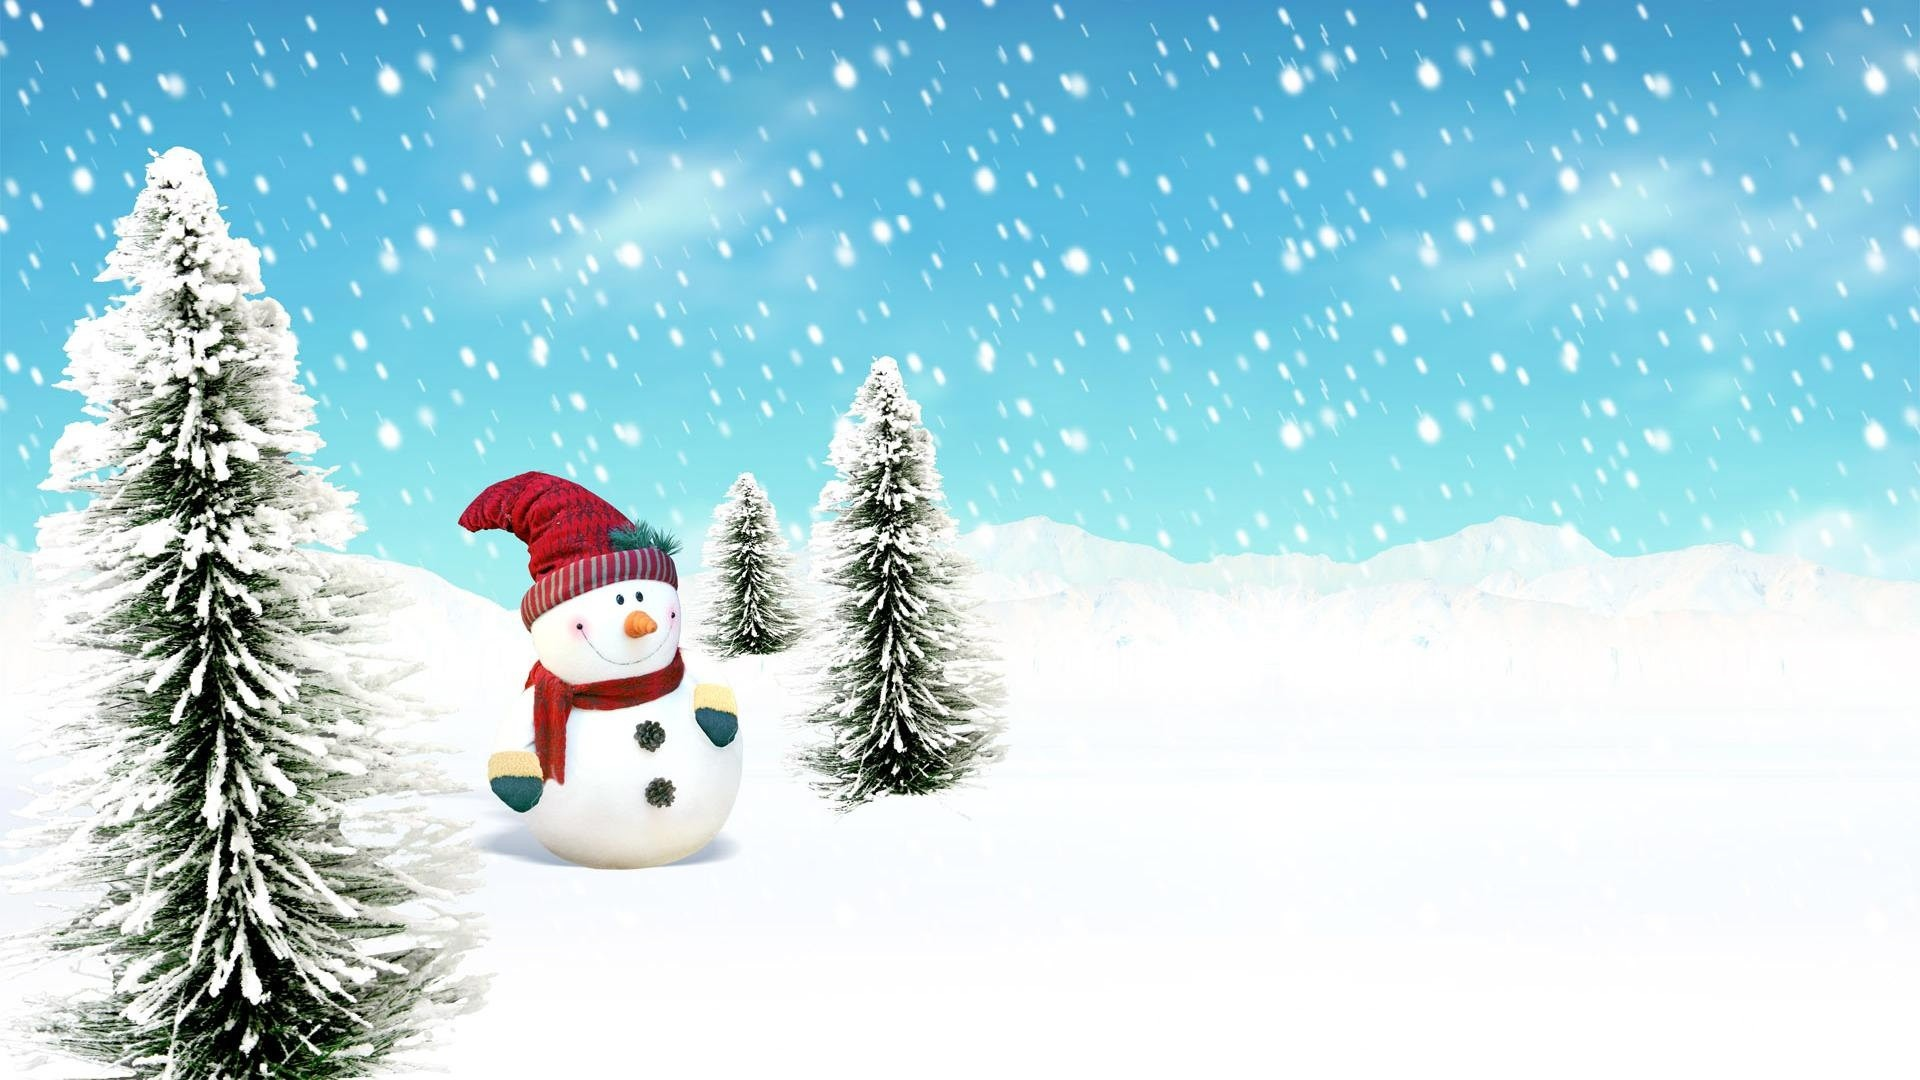 Choose among our big list of beautiful Widescreen Christmas wallpapers.  Widescreen Christmas wallpapers are made in resolutions perfect for widescr…